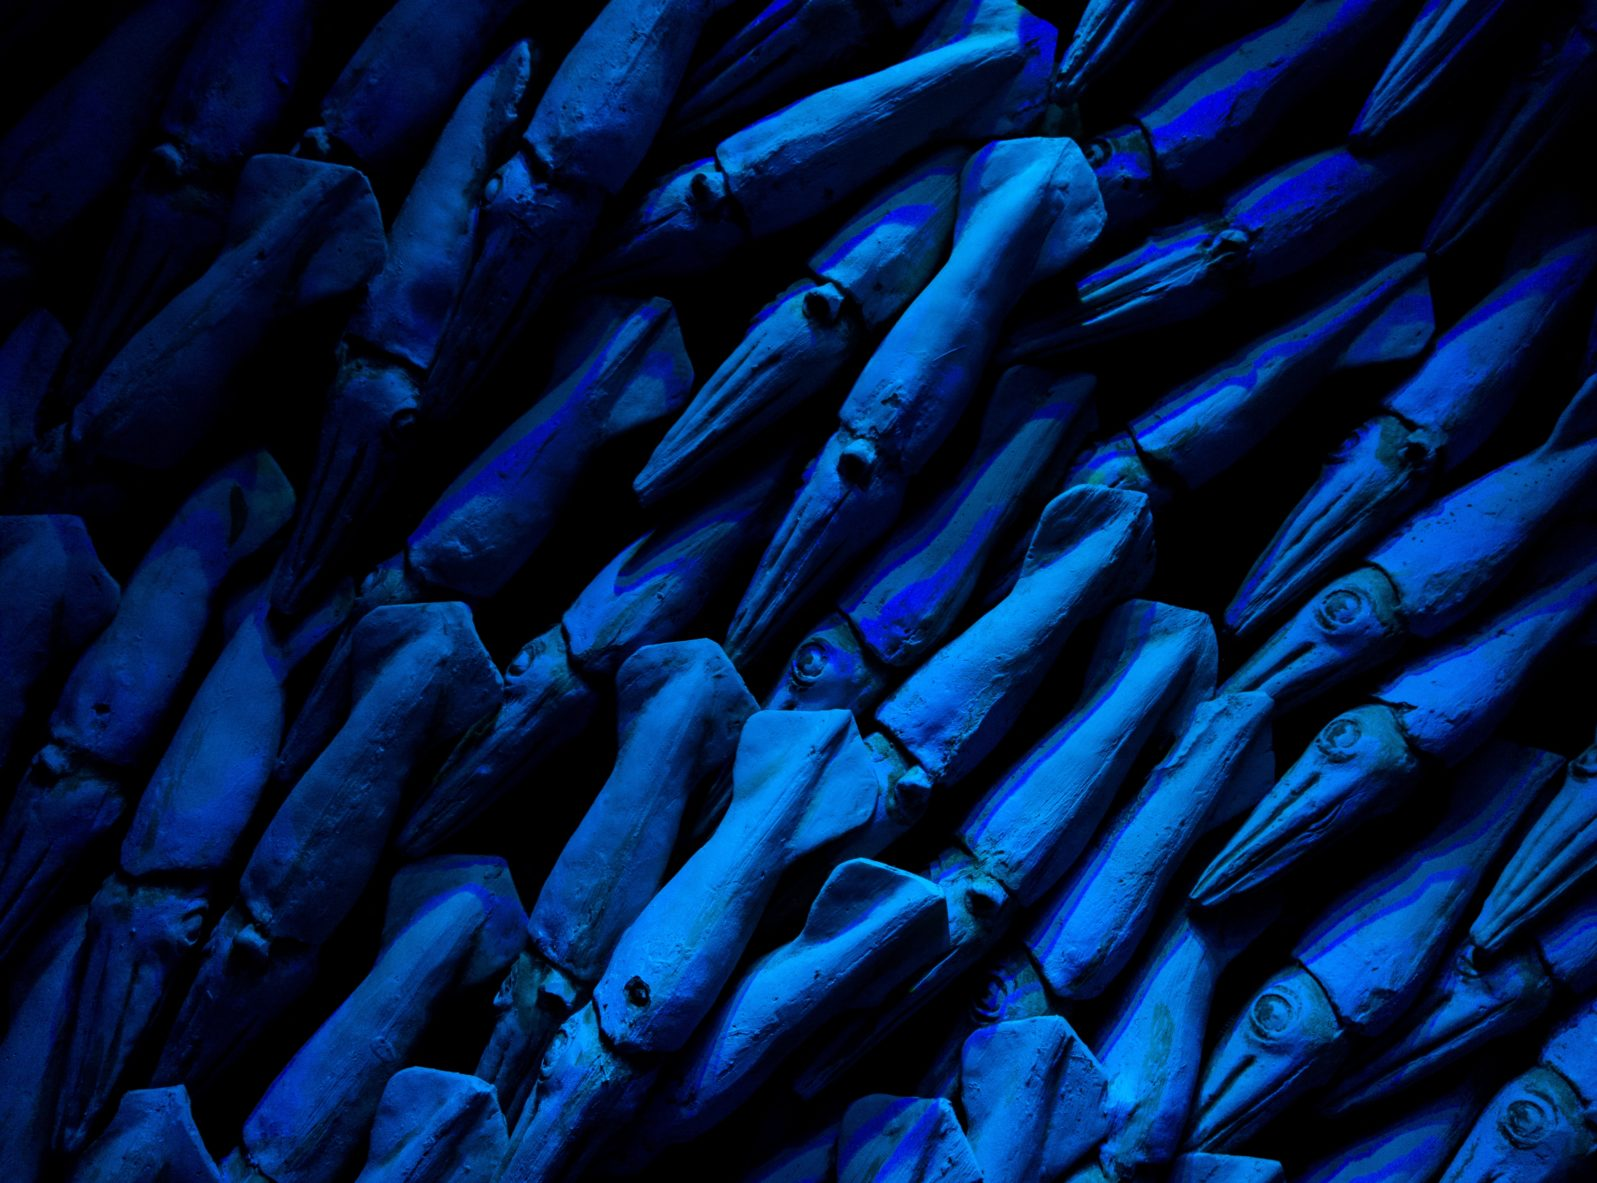 A host of blue squid